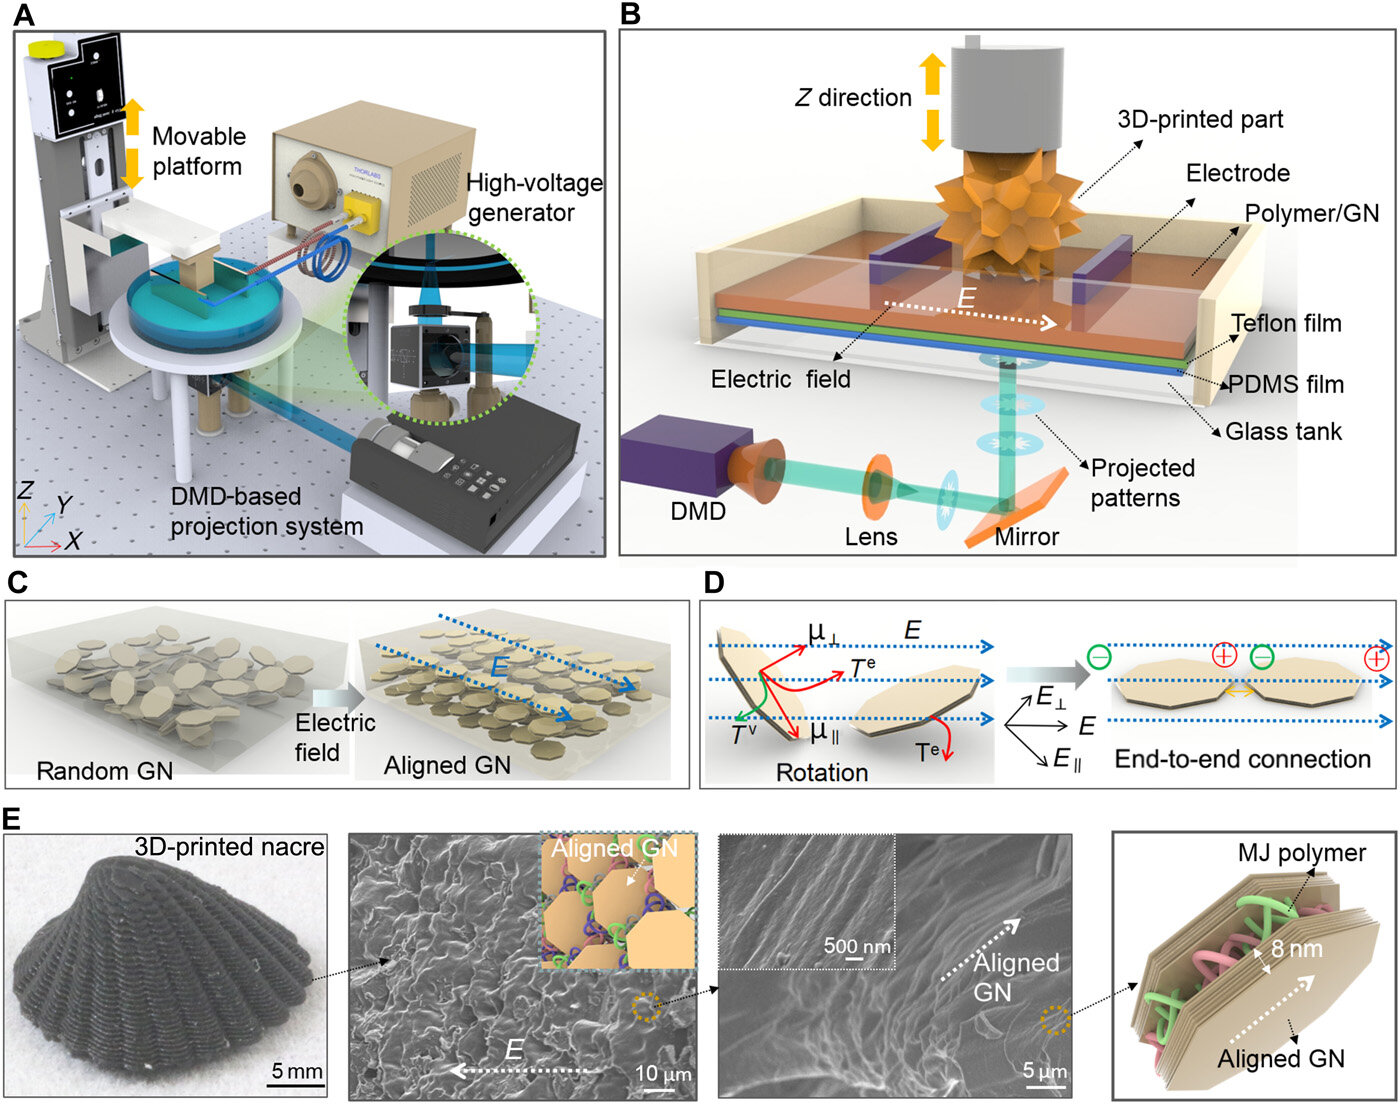 3-D printing electrically assisted, nacre-inspired structures with self-sensing capabilities